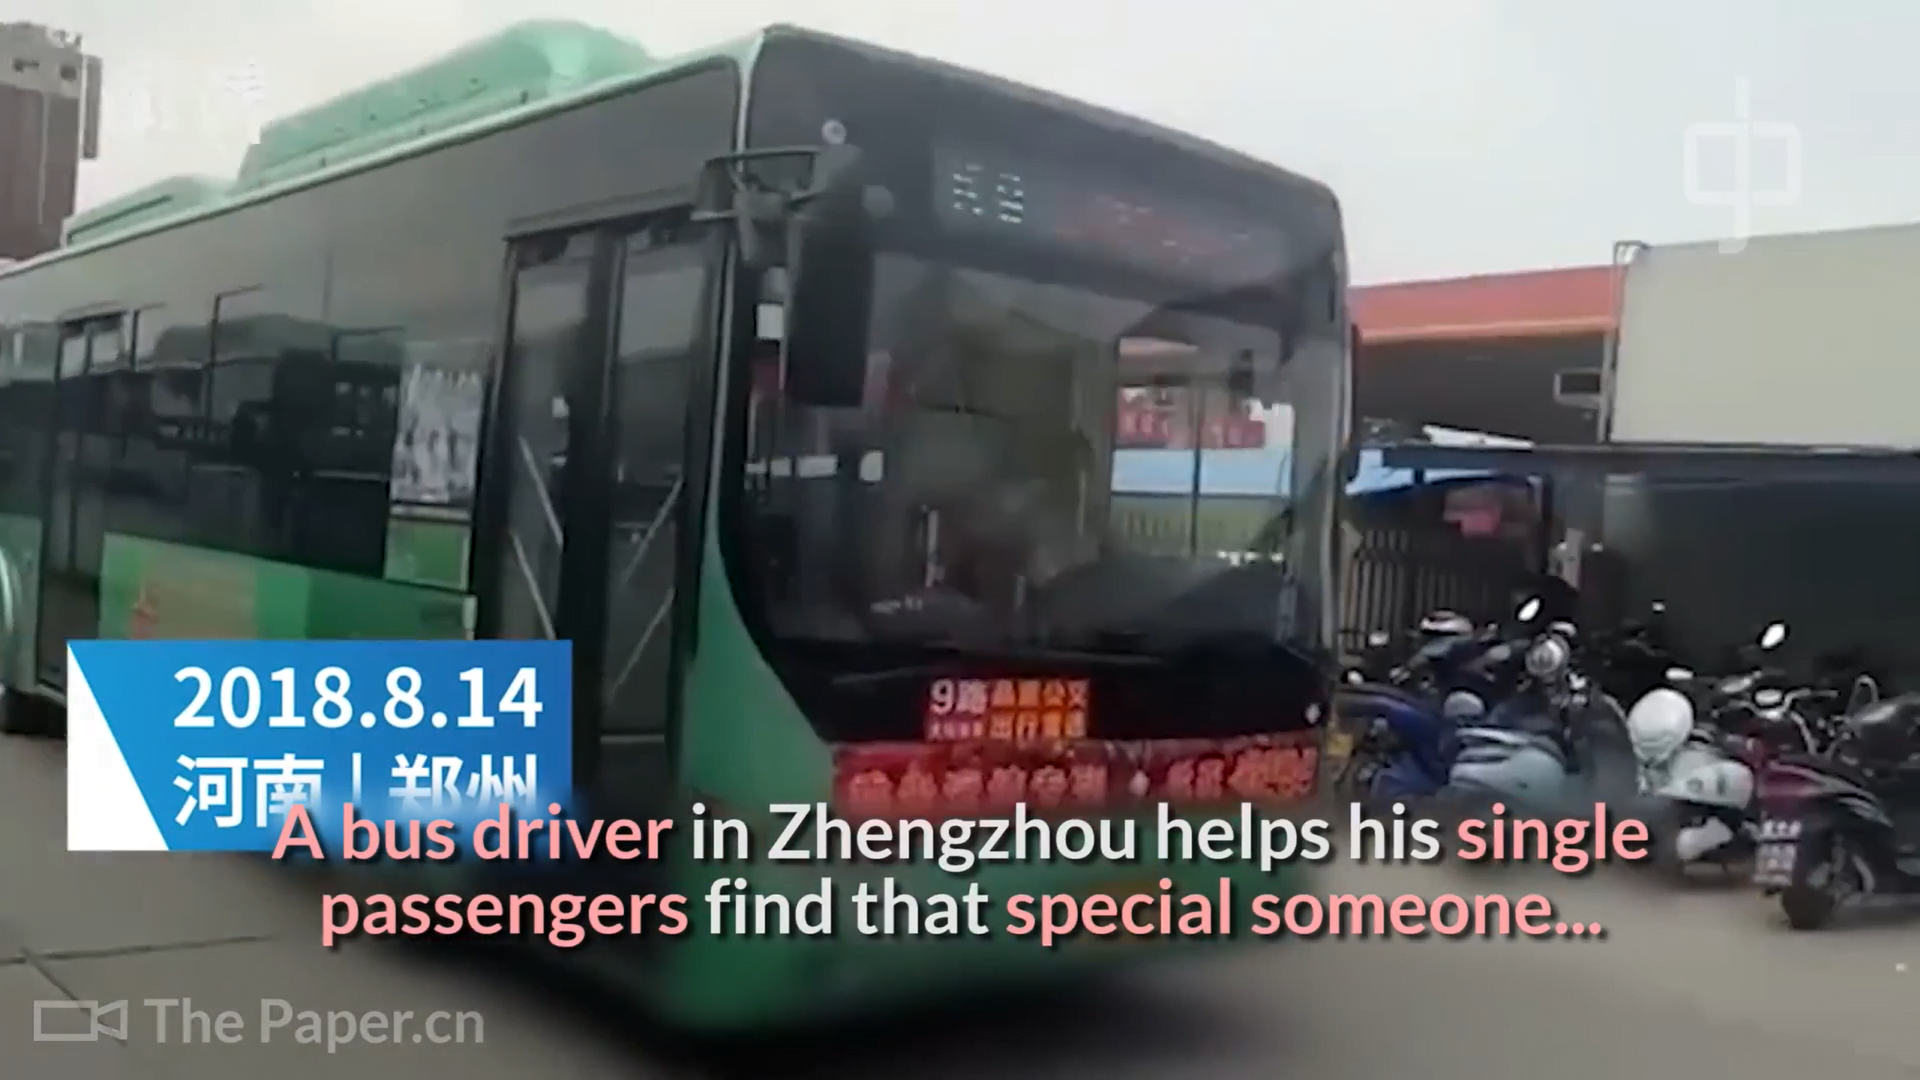 This bus driver has helped 23 couples in their marriage